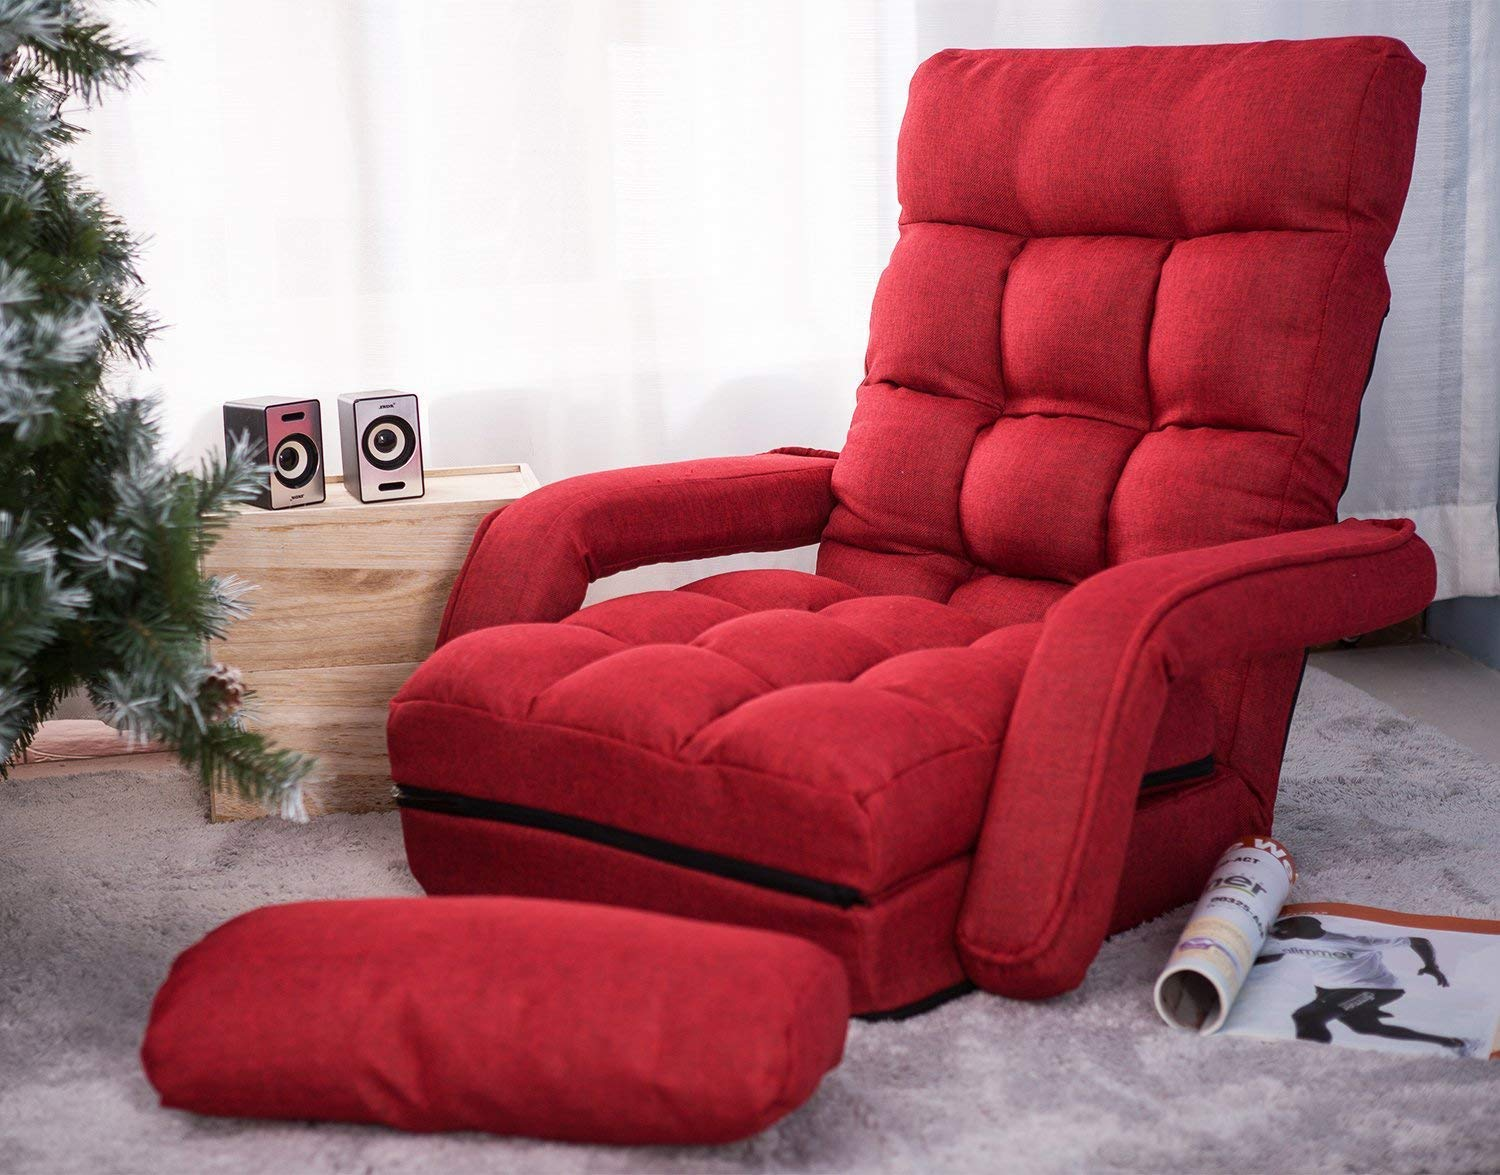 Merax Folding Lazy Floor Chair Sofa Lounger Bed Chaise Couch with Armrests and Pillow, Red